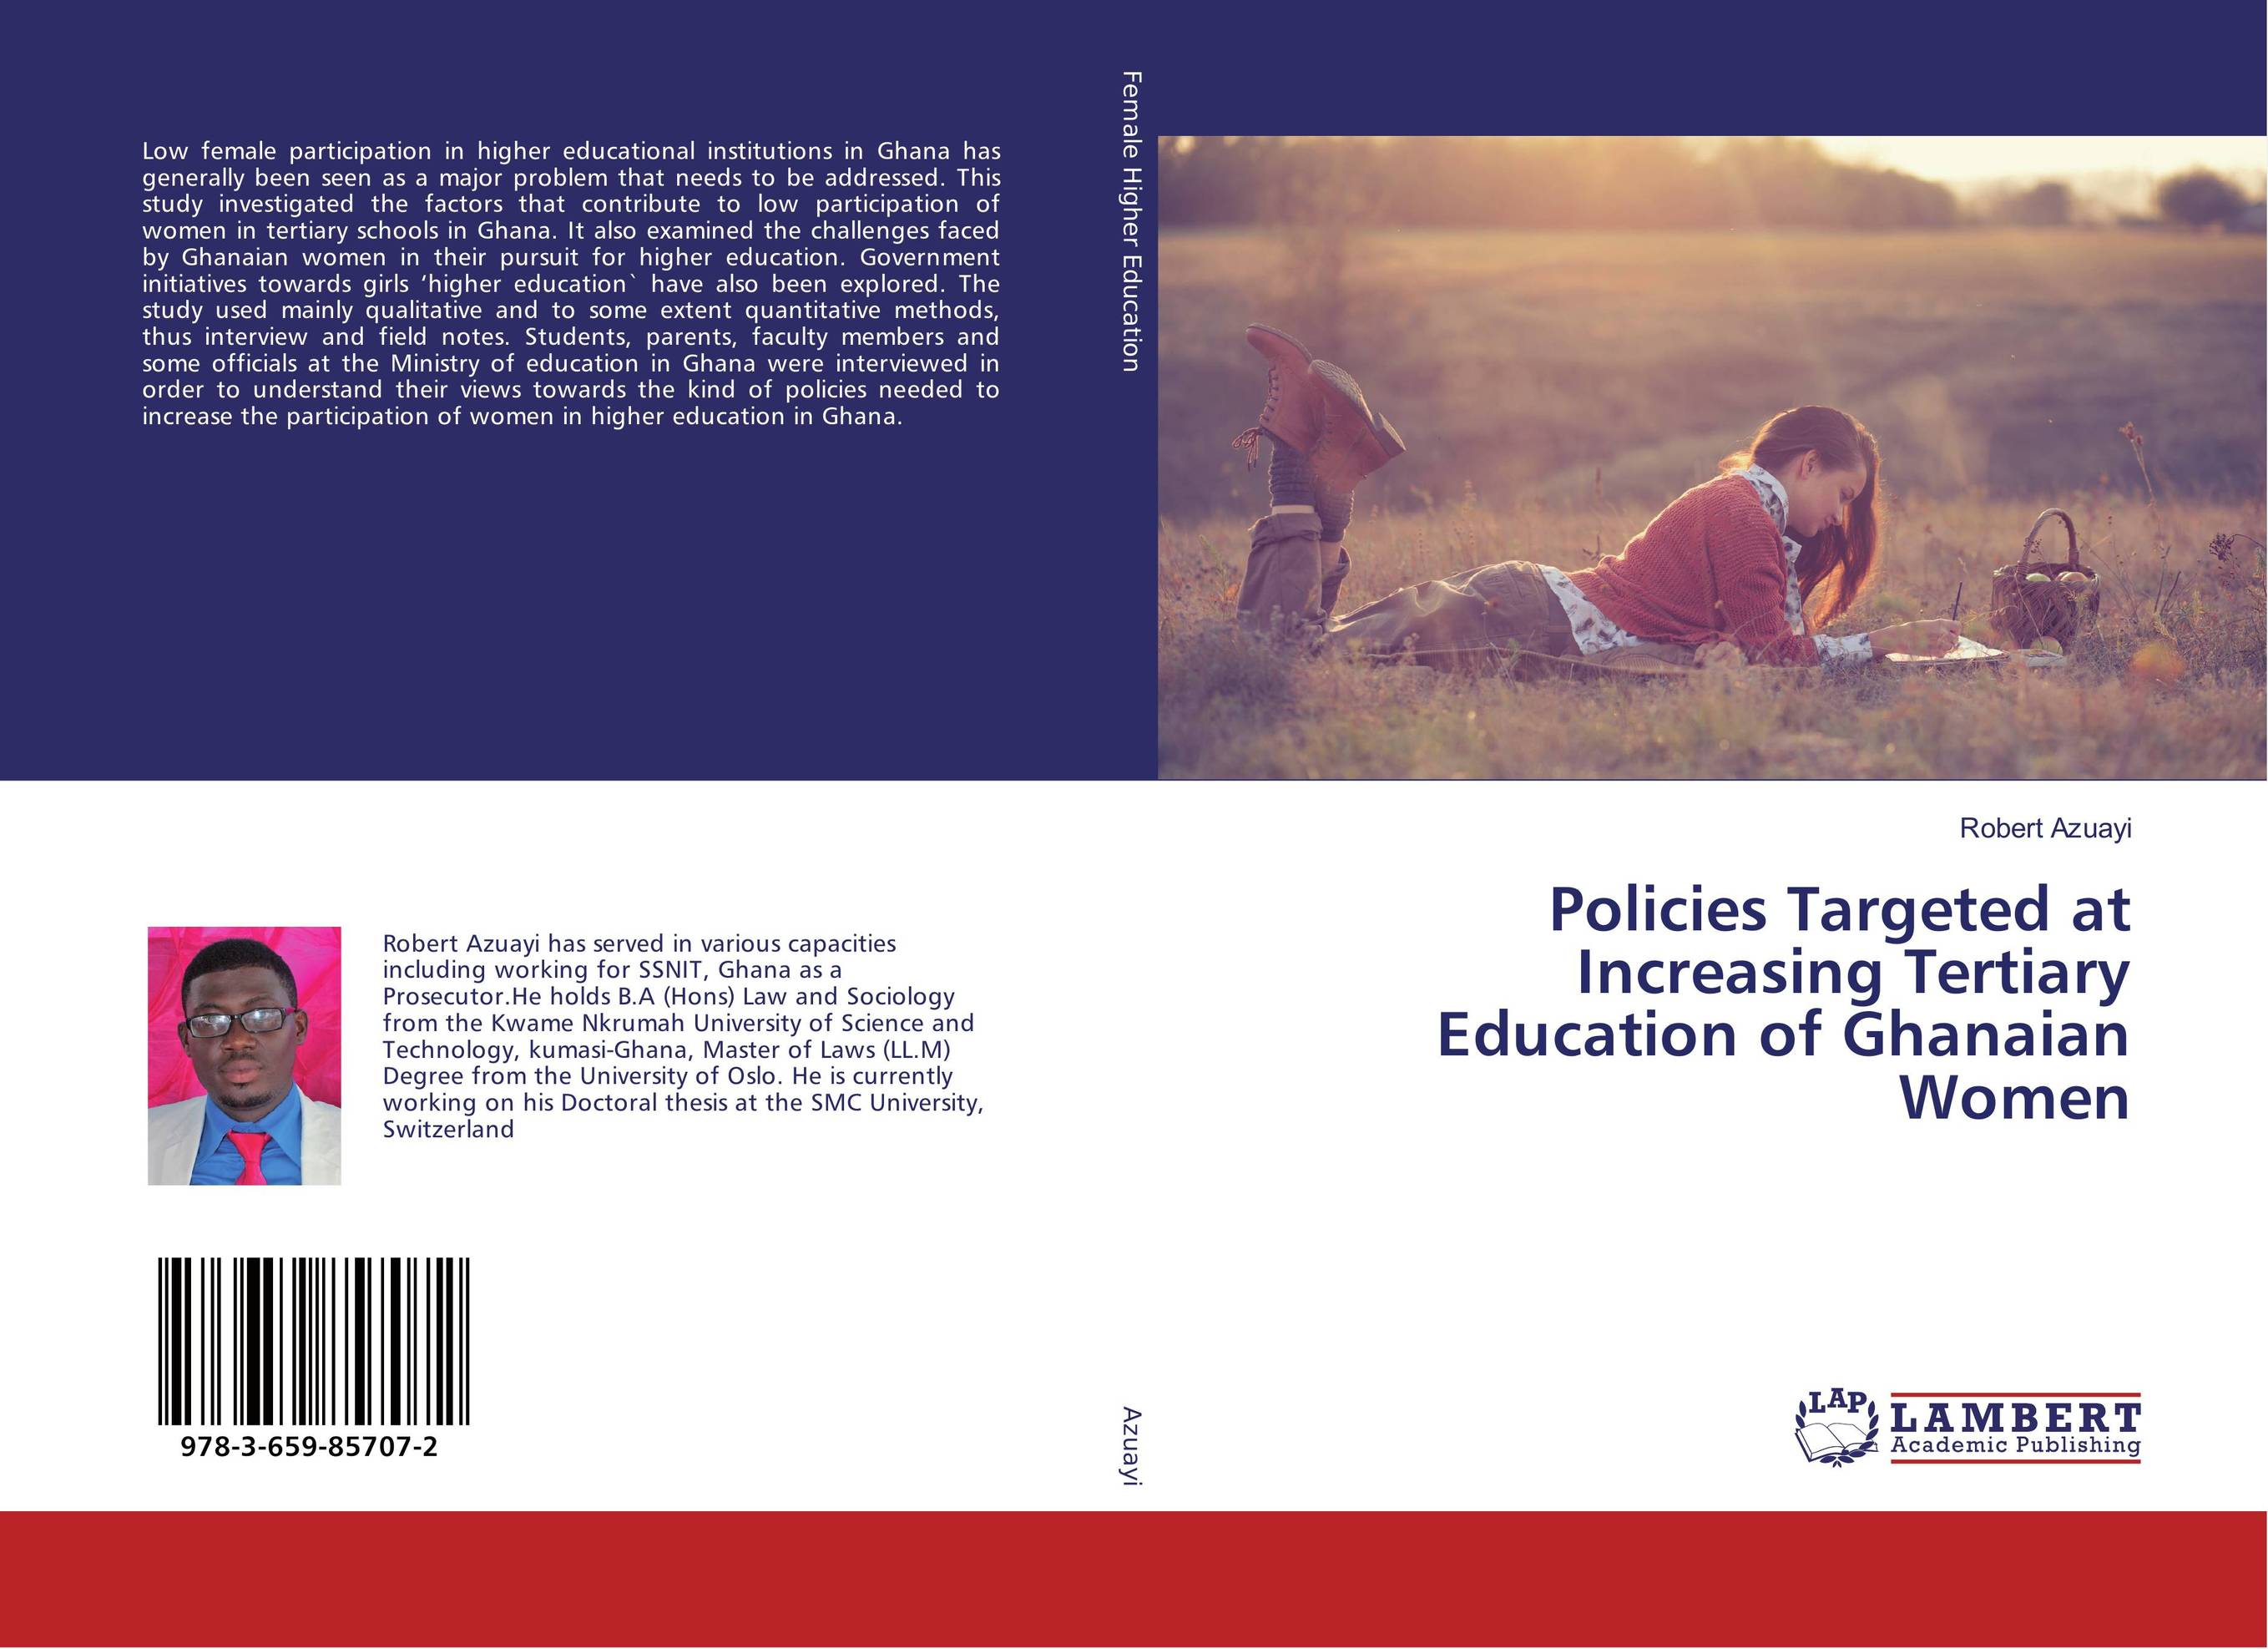 Policies Targeted at Increasing Tertiary Education of Ghanaian Women microsimulation modeling of ict policies at firm level